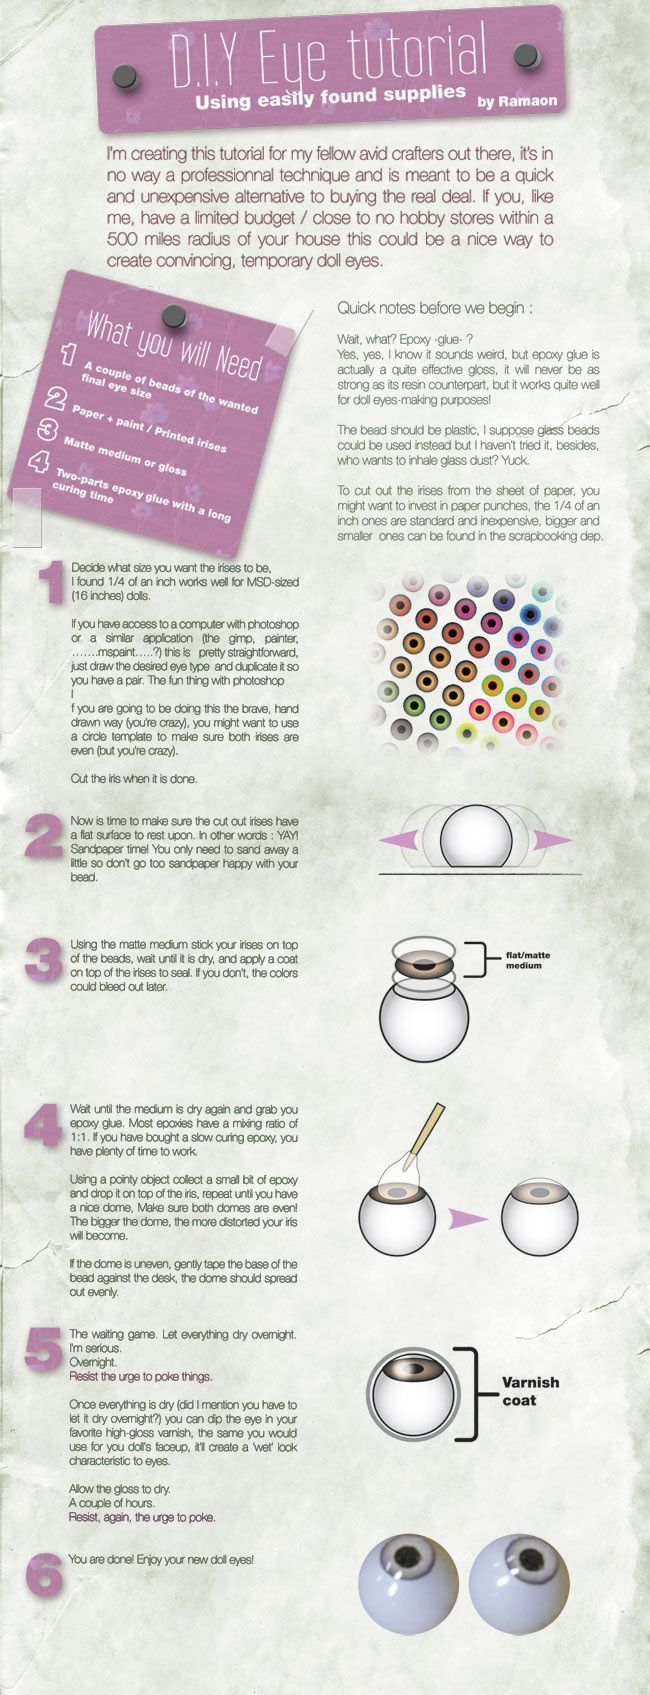 Más como SD BJD tricornio by ©scargeear. How to make your own BJD eyes using epoxy resin, beads, and printed or painted irises.                                                                                                                                                      More